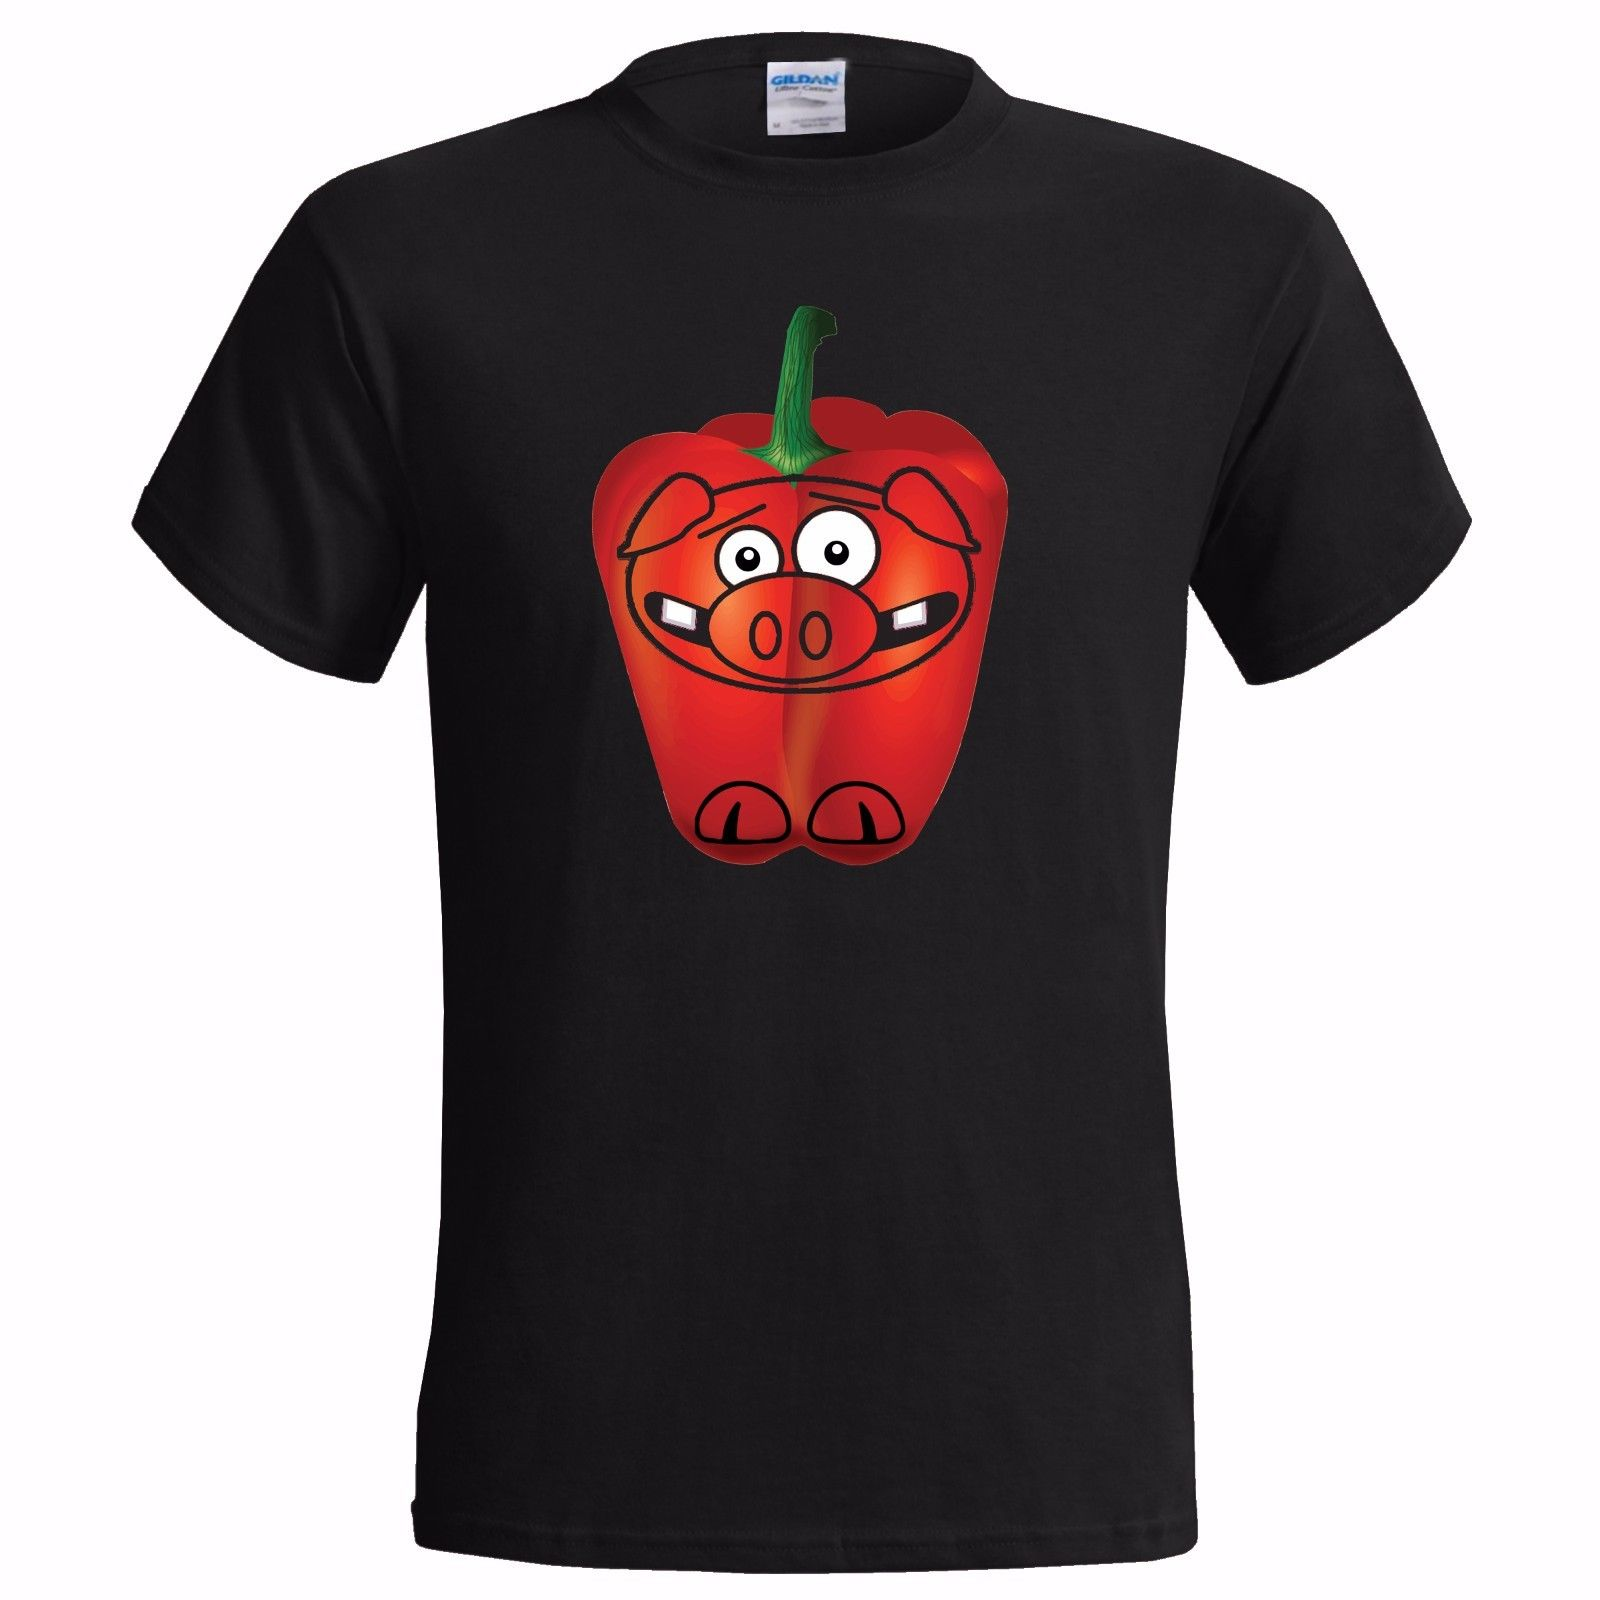 A PEPPER PIG BAD JOKE FUNNY MENS T SHIRT PUN SPOOF KIDS TV TELEVISION CARTOON